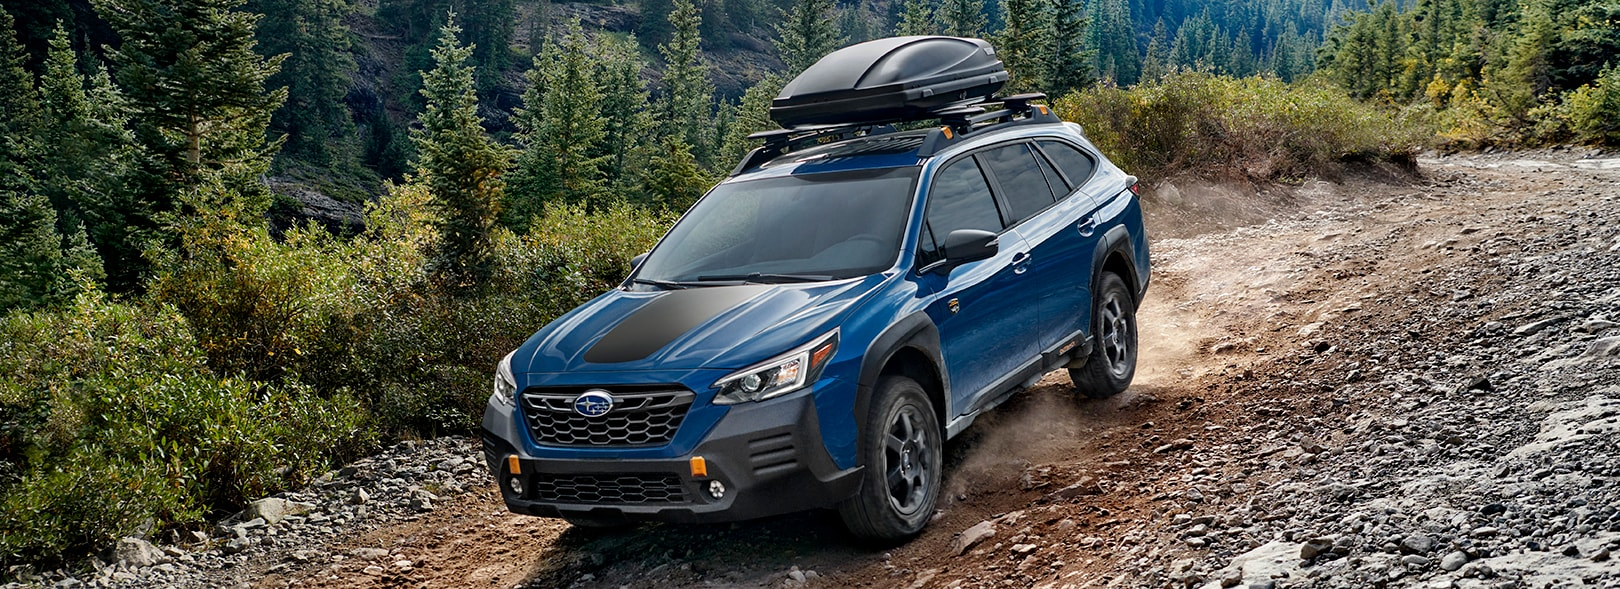 2022 Subaru Outback Wilderness - Timmons of Long Beach